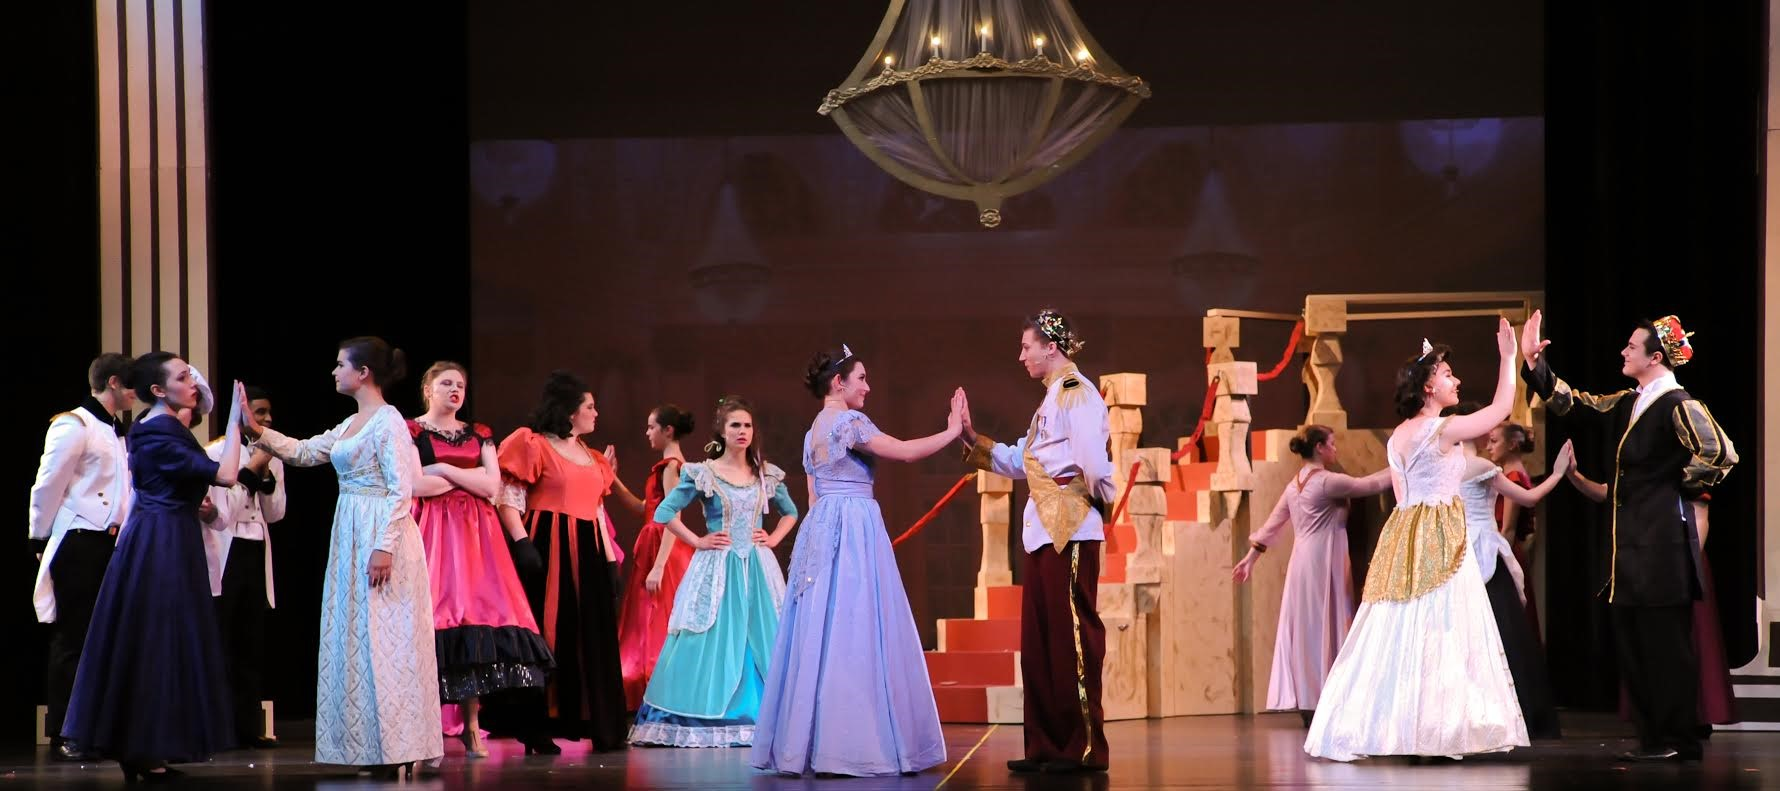 Congratulations to the cast and crew of Cinderella, SUA's spring musical. It was spectacular!